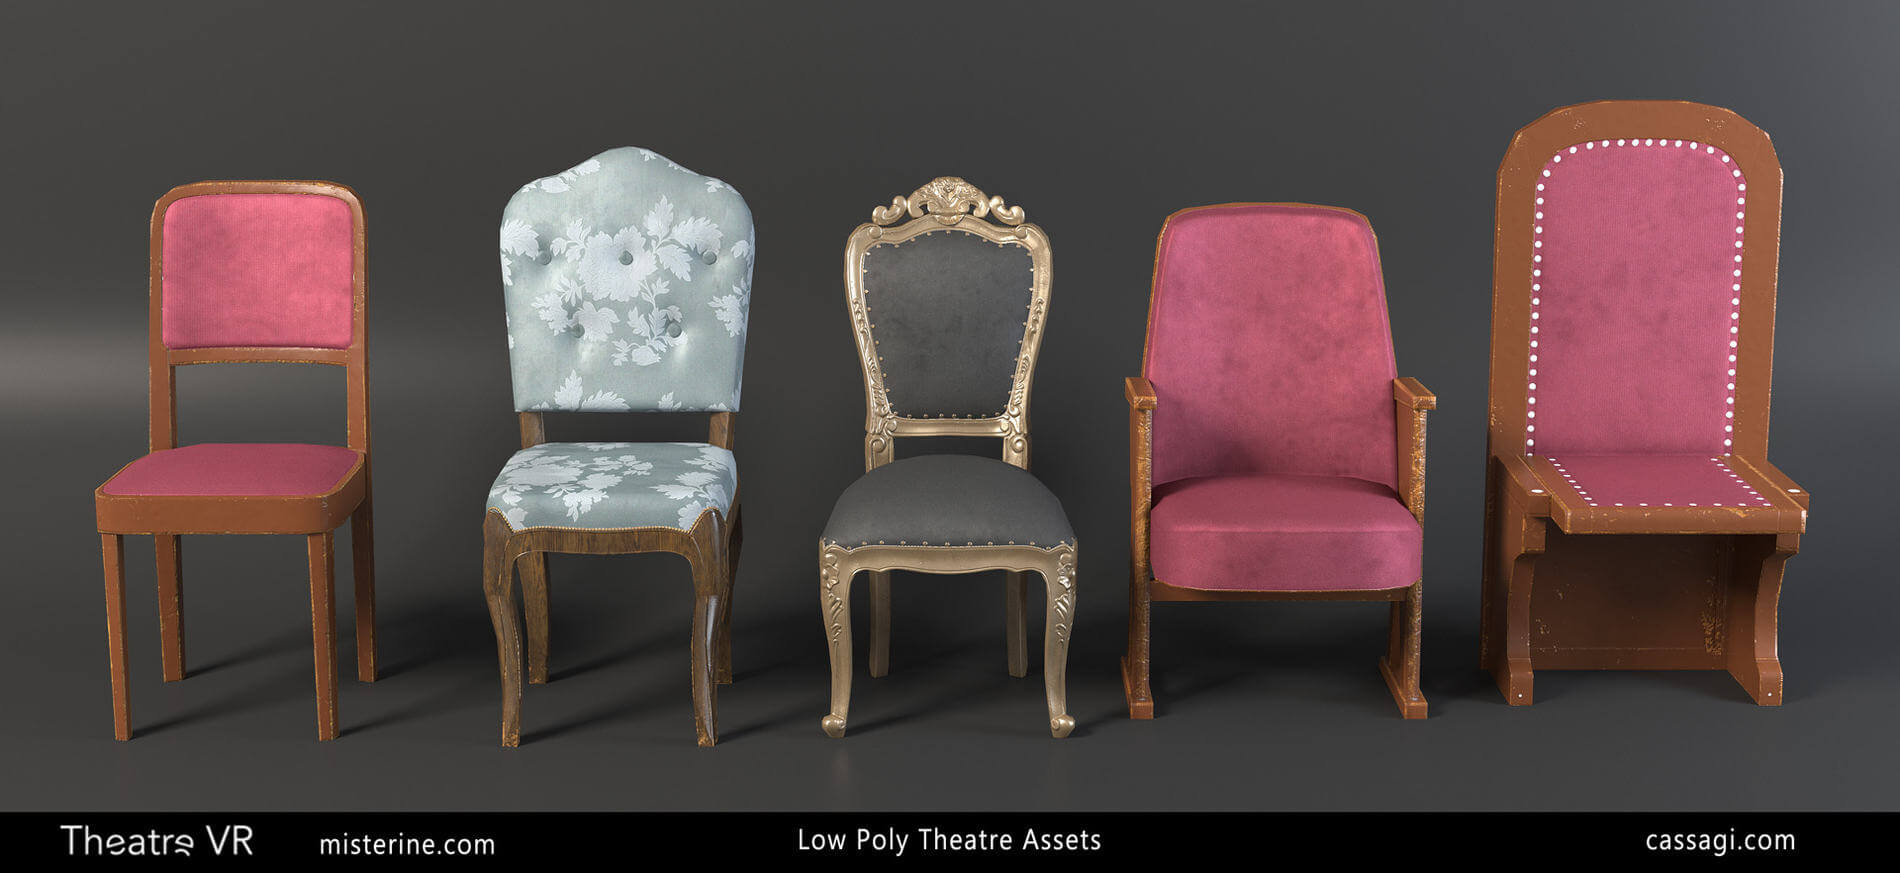 Theatre VR interior game environment furniture assets